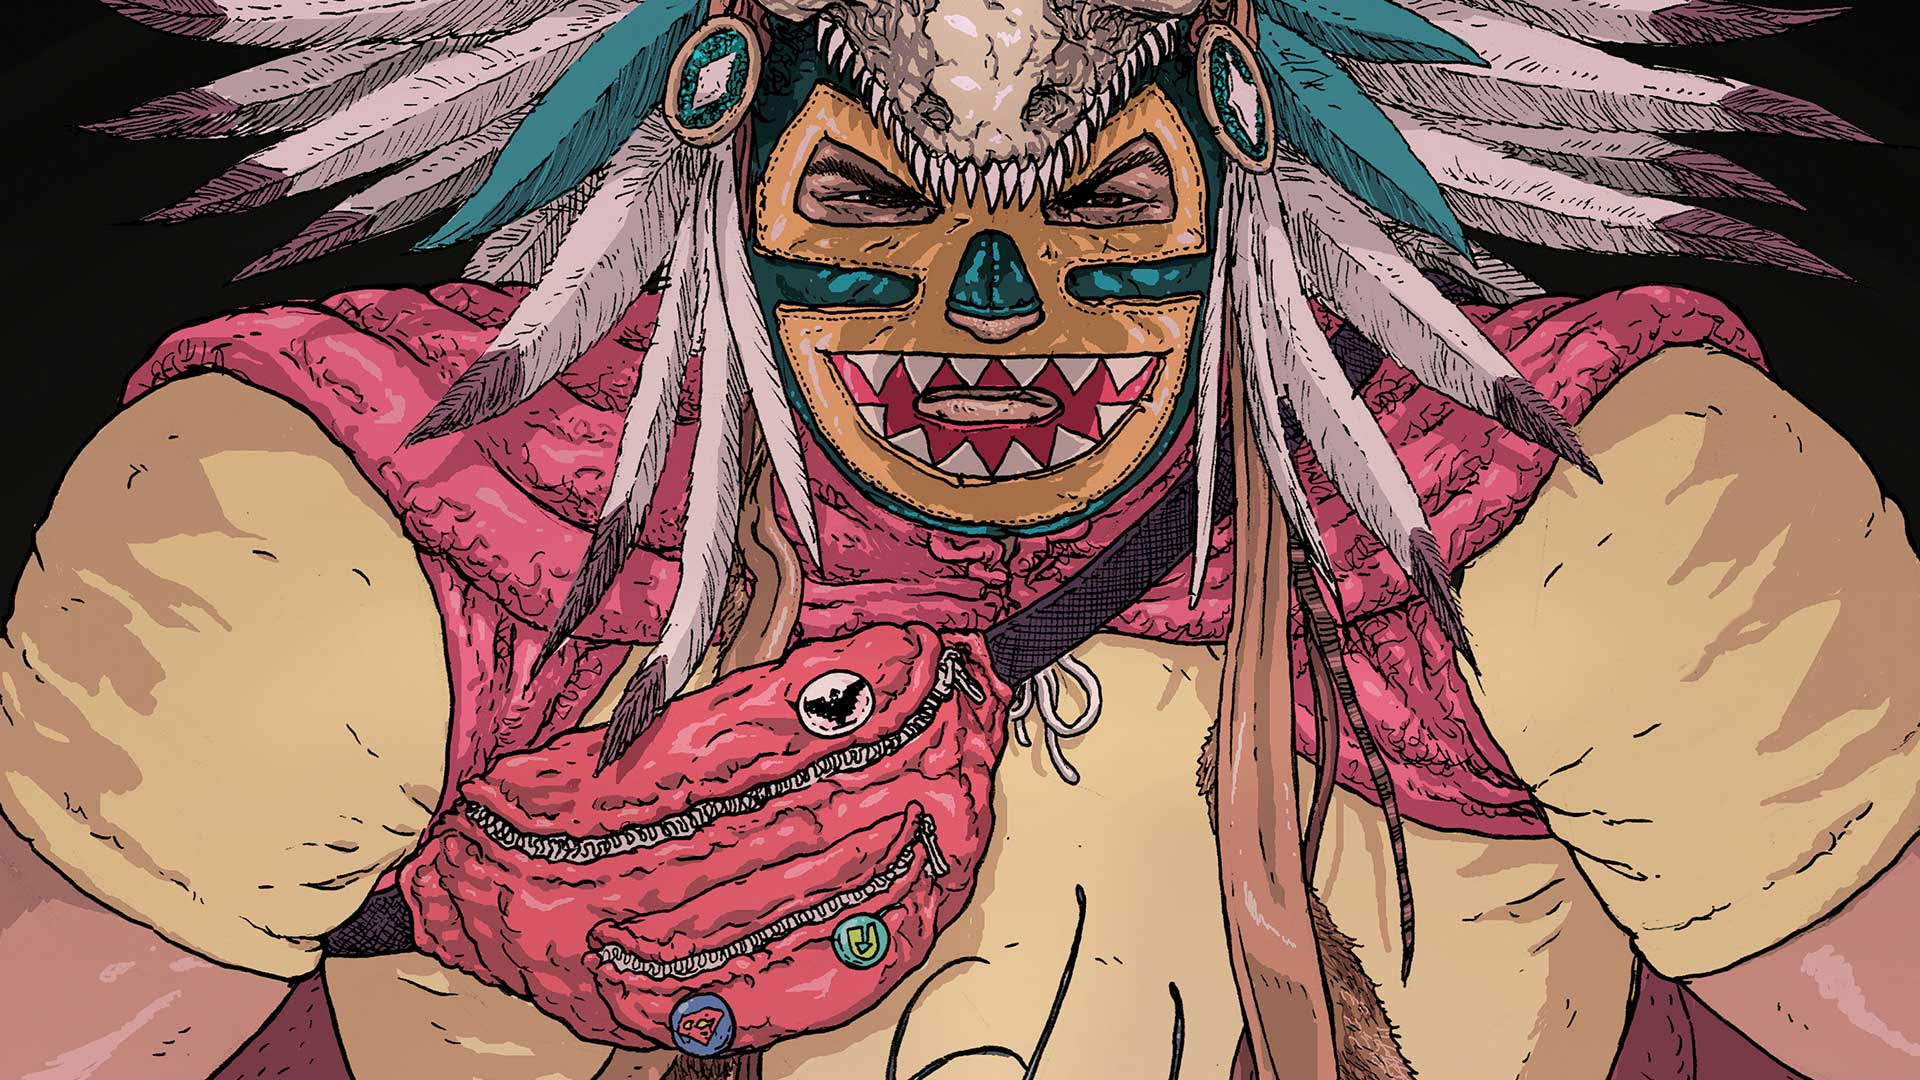 Border Town #2 review: Deftly using action and monsters to tackle immigration